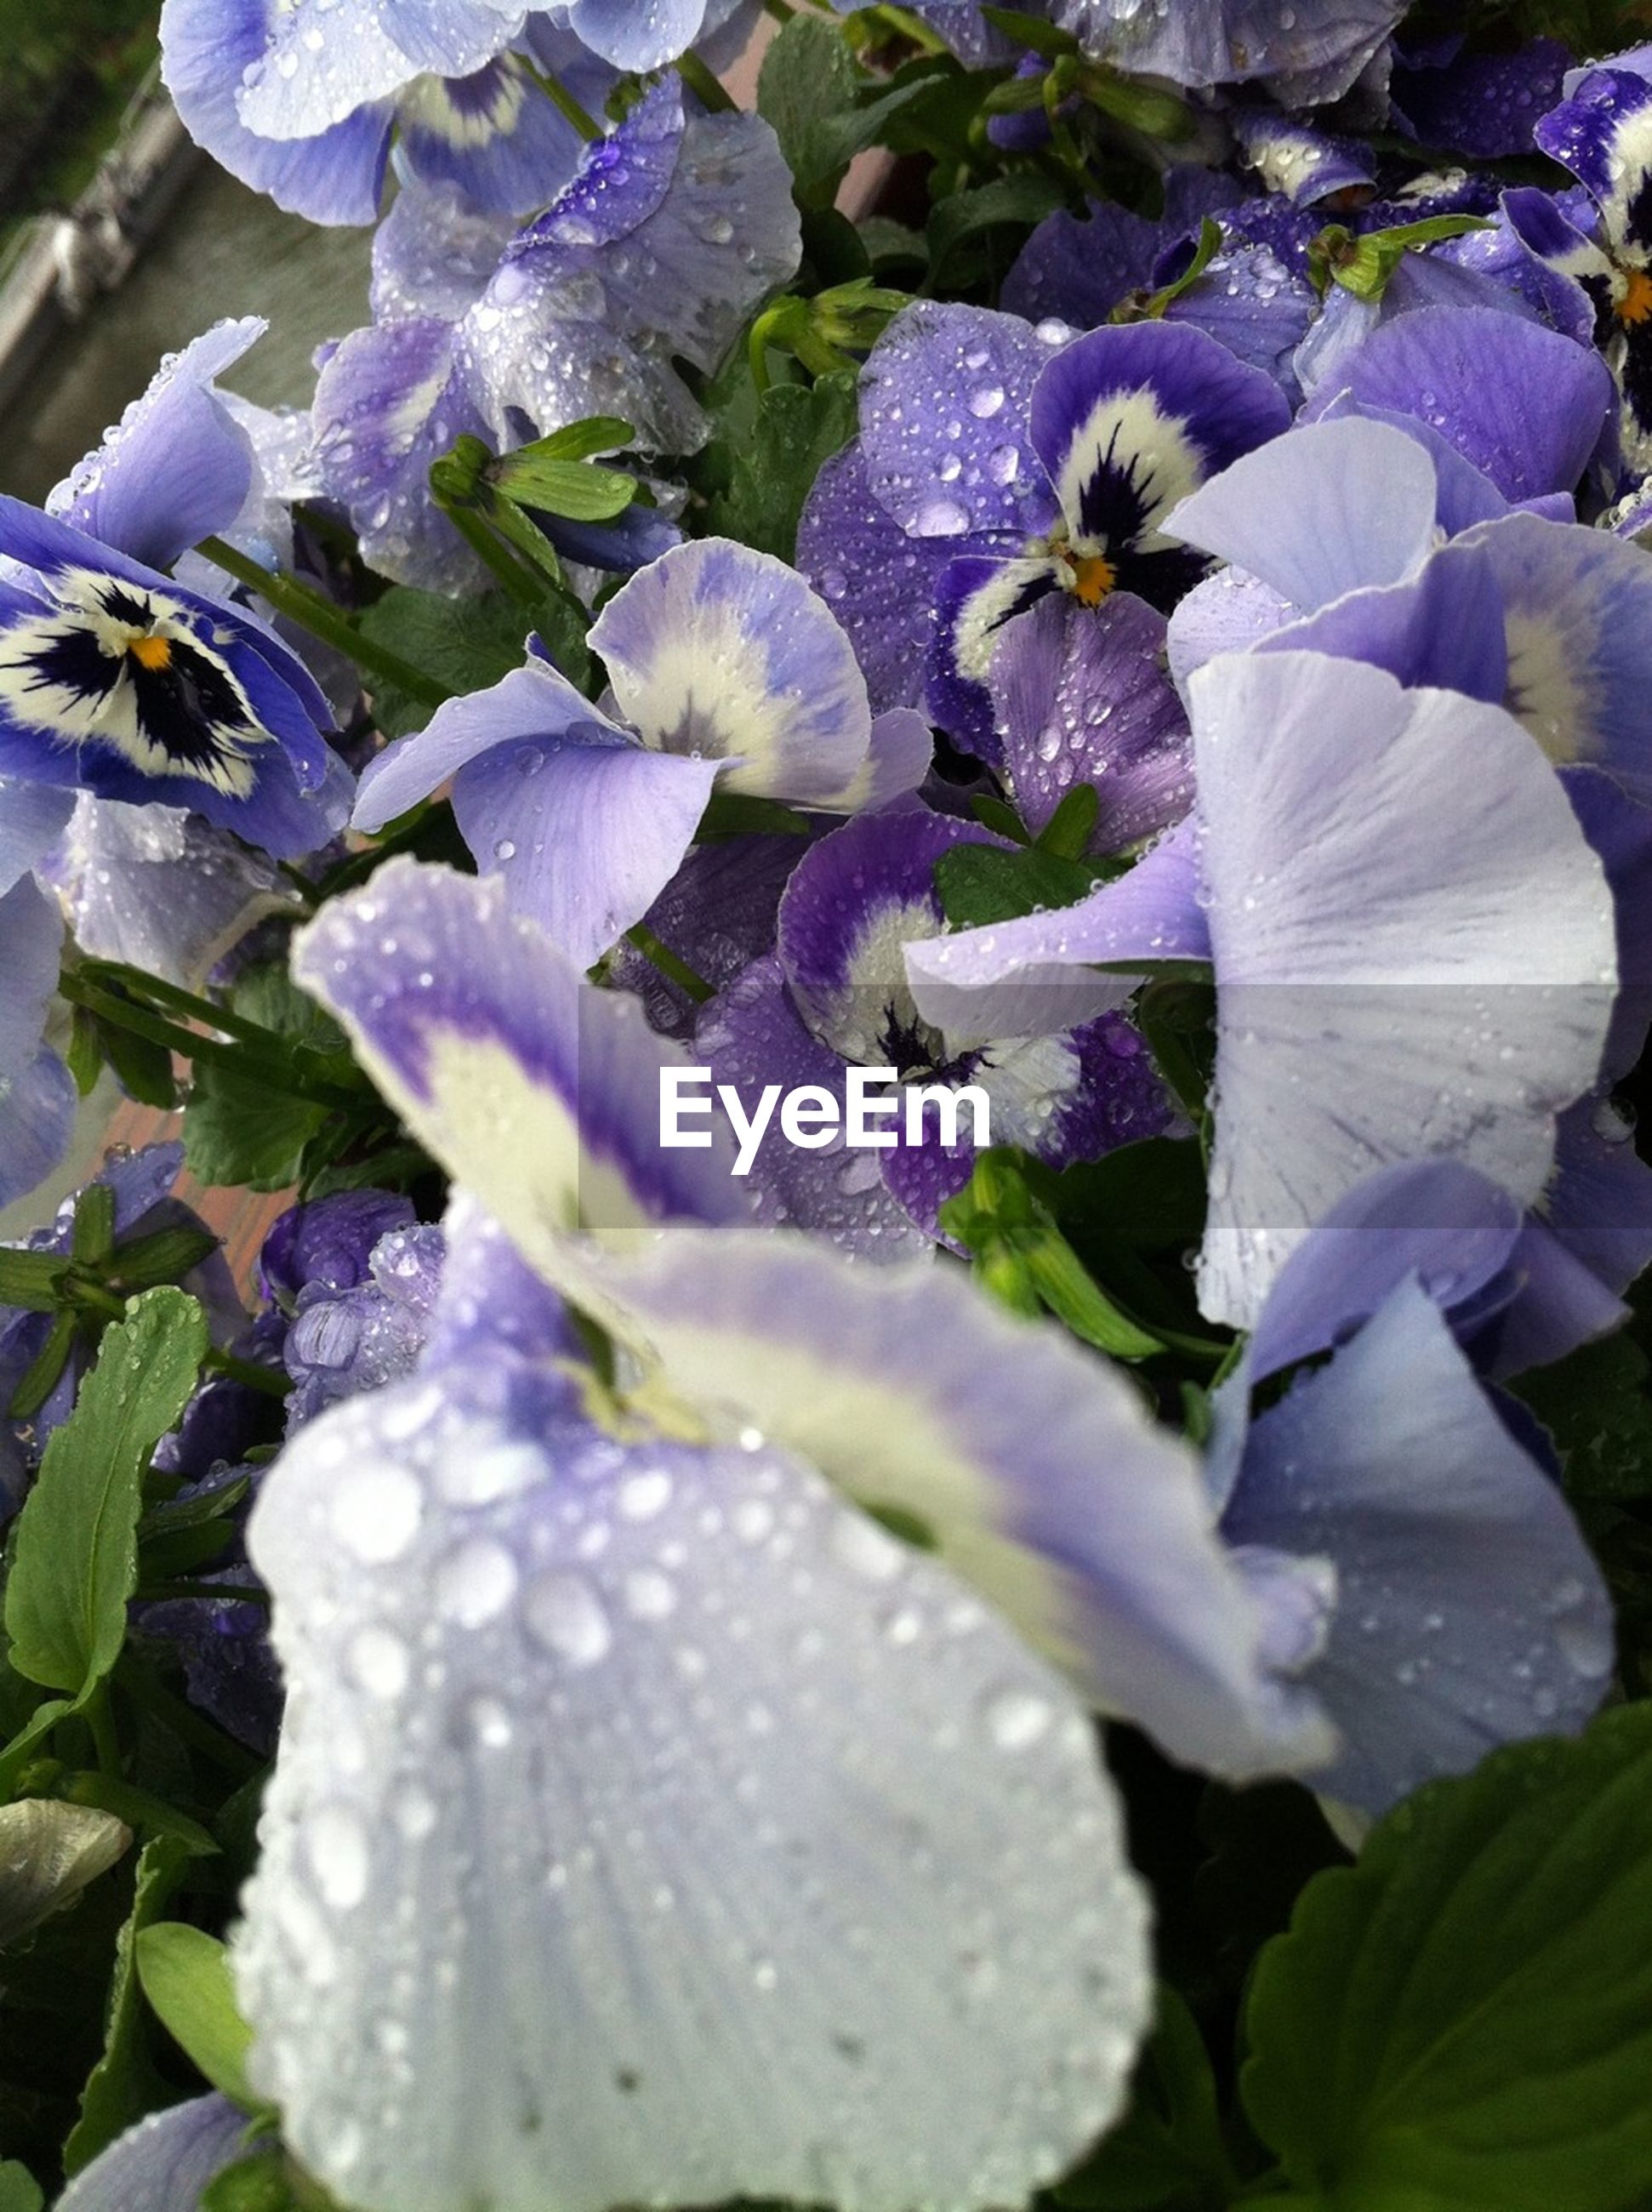 flower, freshness, fragility, petal, growth, beauty in nature, drop, purple, close-up, flower head, nature, plant, wet, leaf, water, blooming, focus on foreground, season, day, dew